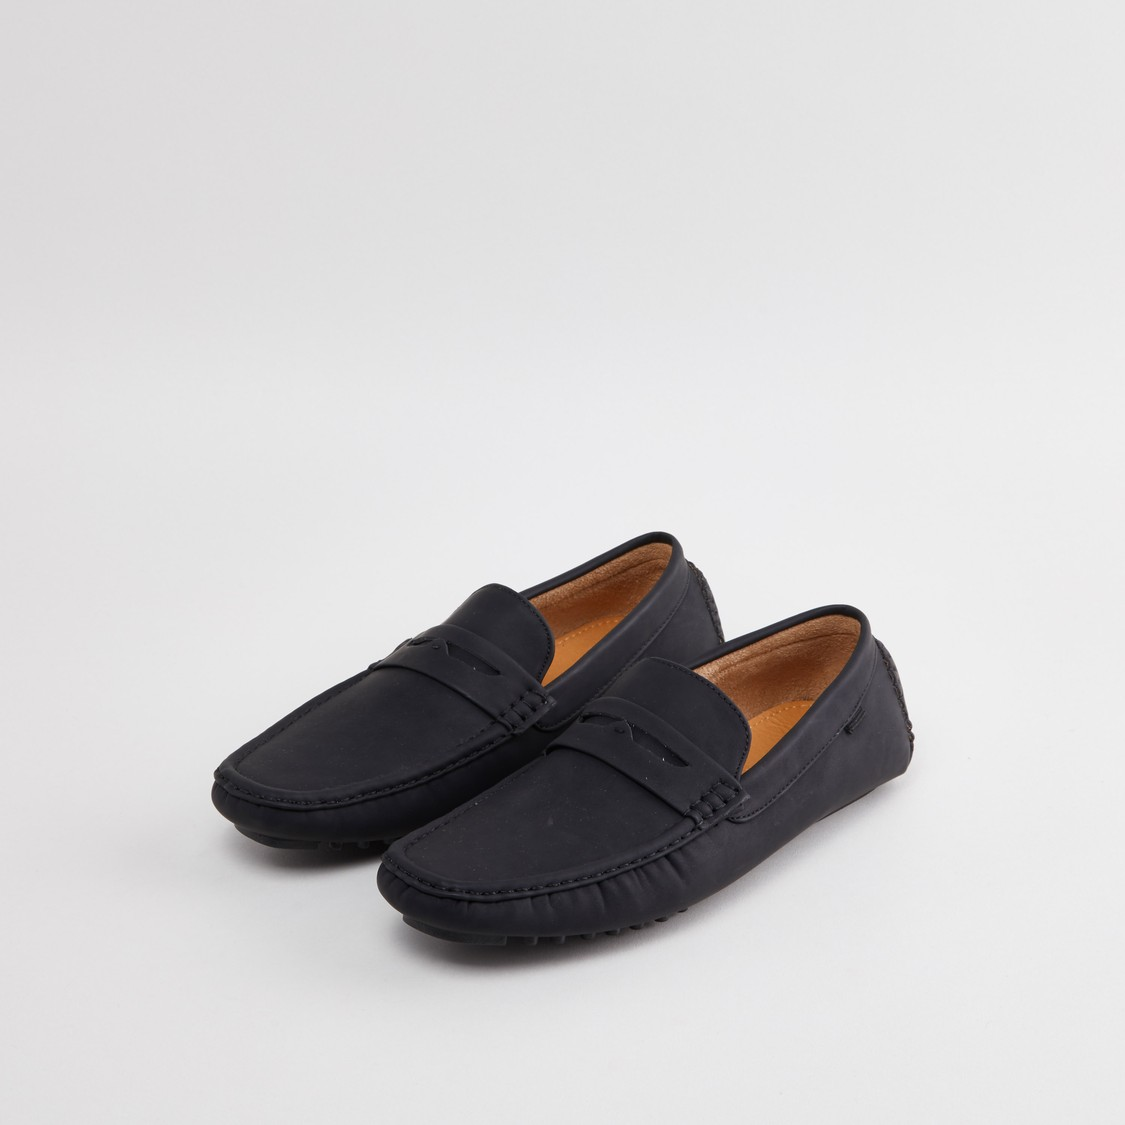 Plain Loafers with Stitch Detail